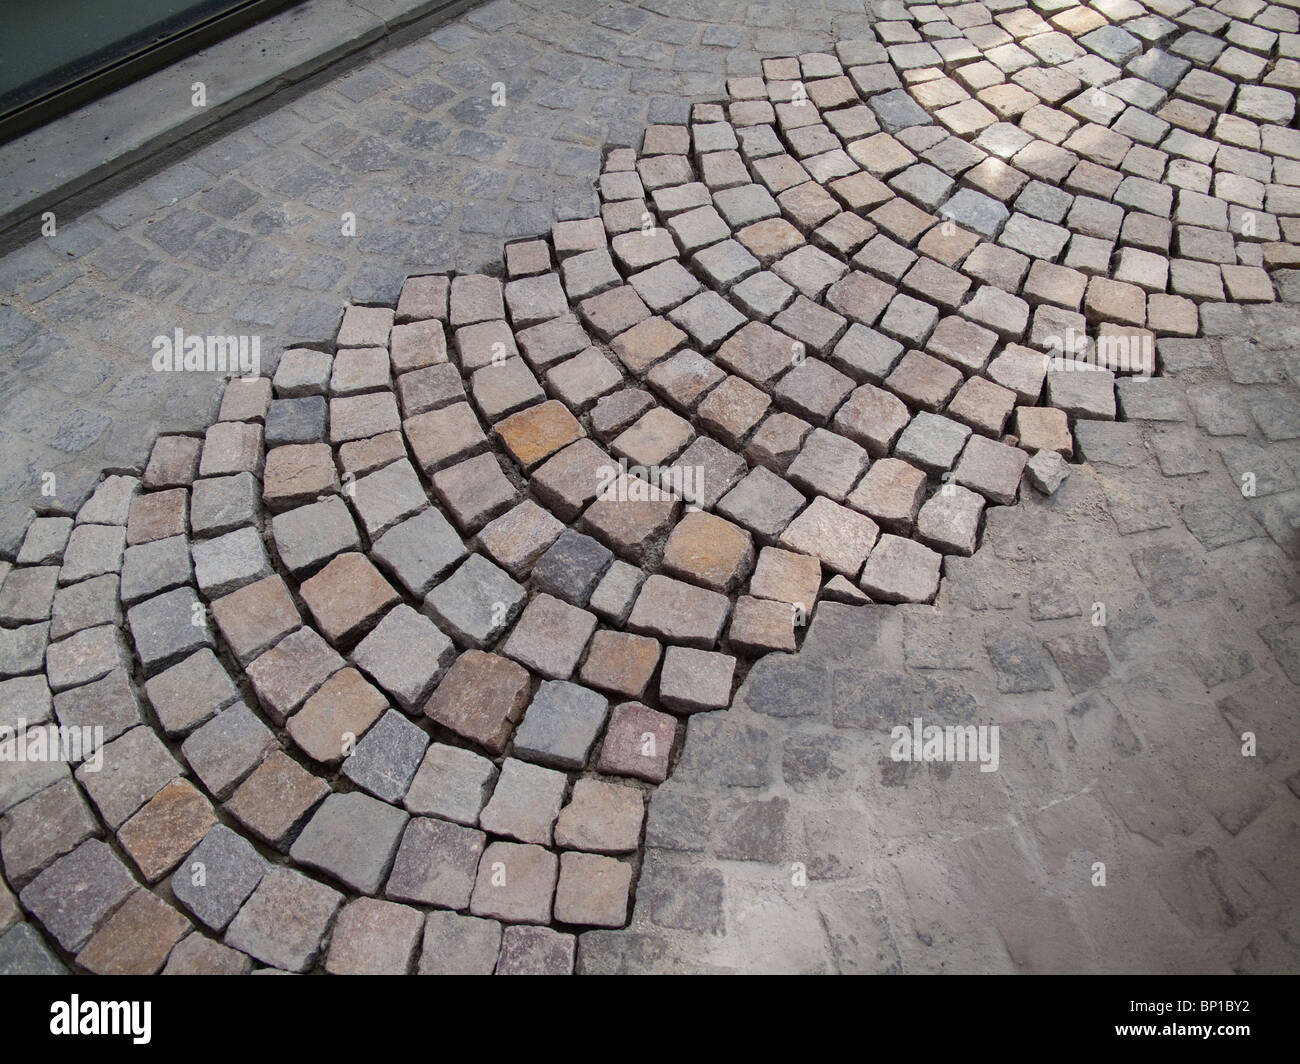 Brick paving being laid in Lille, France - Stock Image